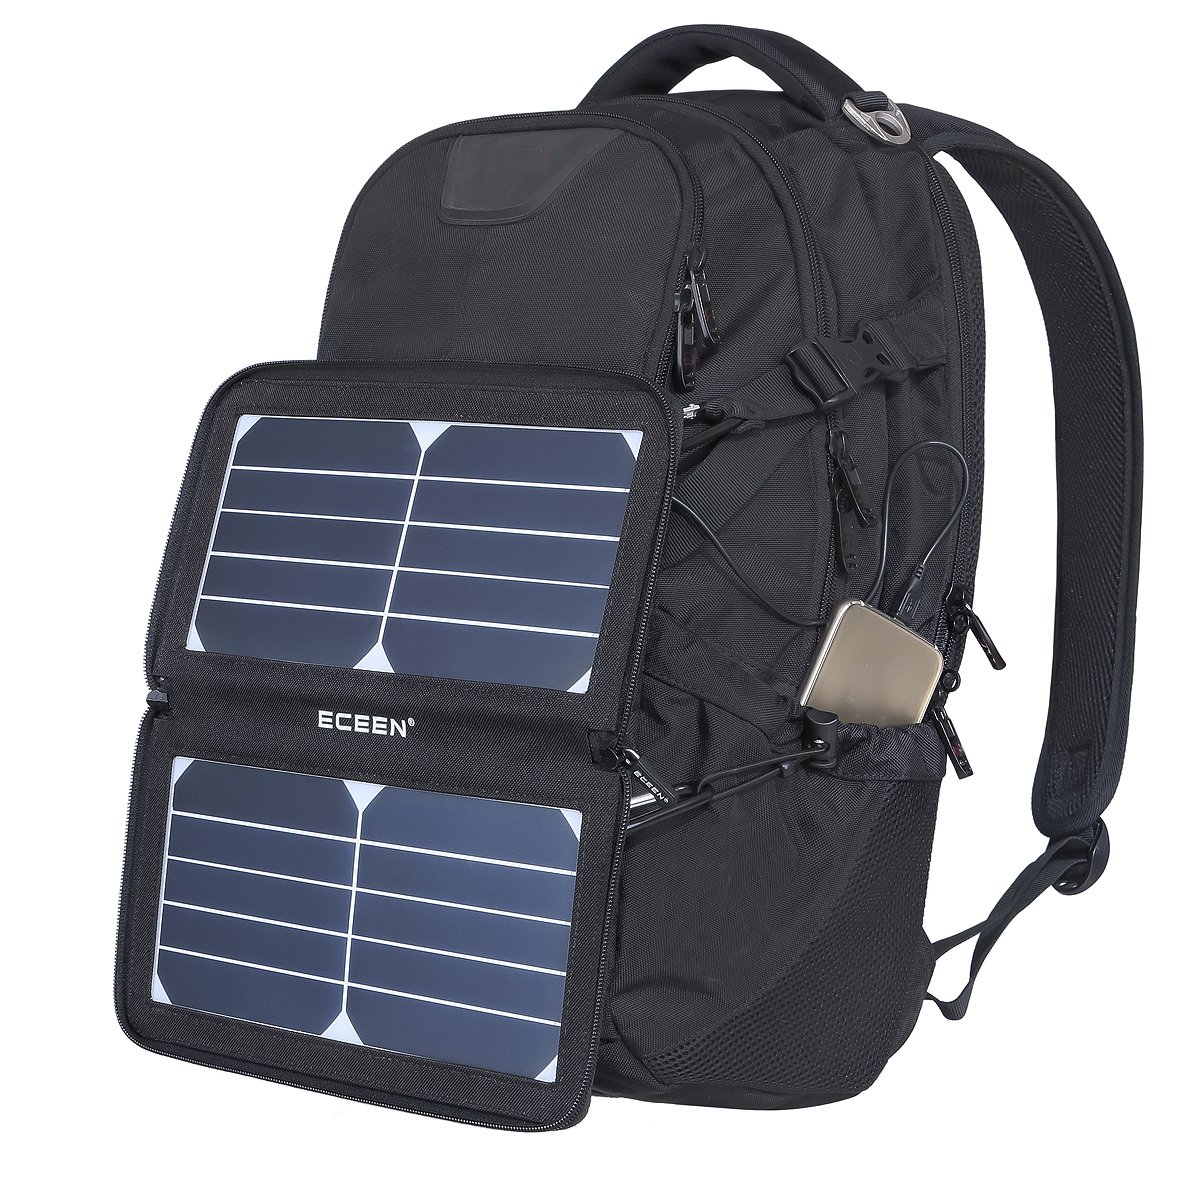 ECEEN Folding Solar Panel Phone Charger With USB Port,Zipper Pack for iPhone, iPad, iPods, Samsung, Android Smartphones Speaker Gopro All 5V USB-Charging Devices (Black) by ECEEN (Image #7)